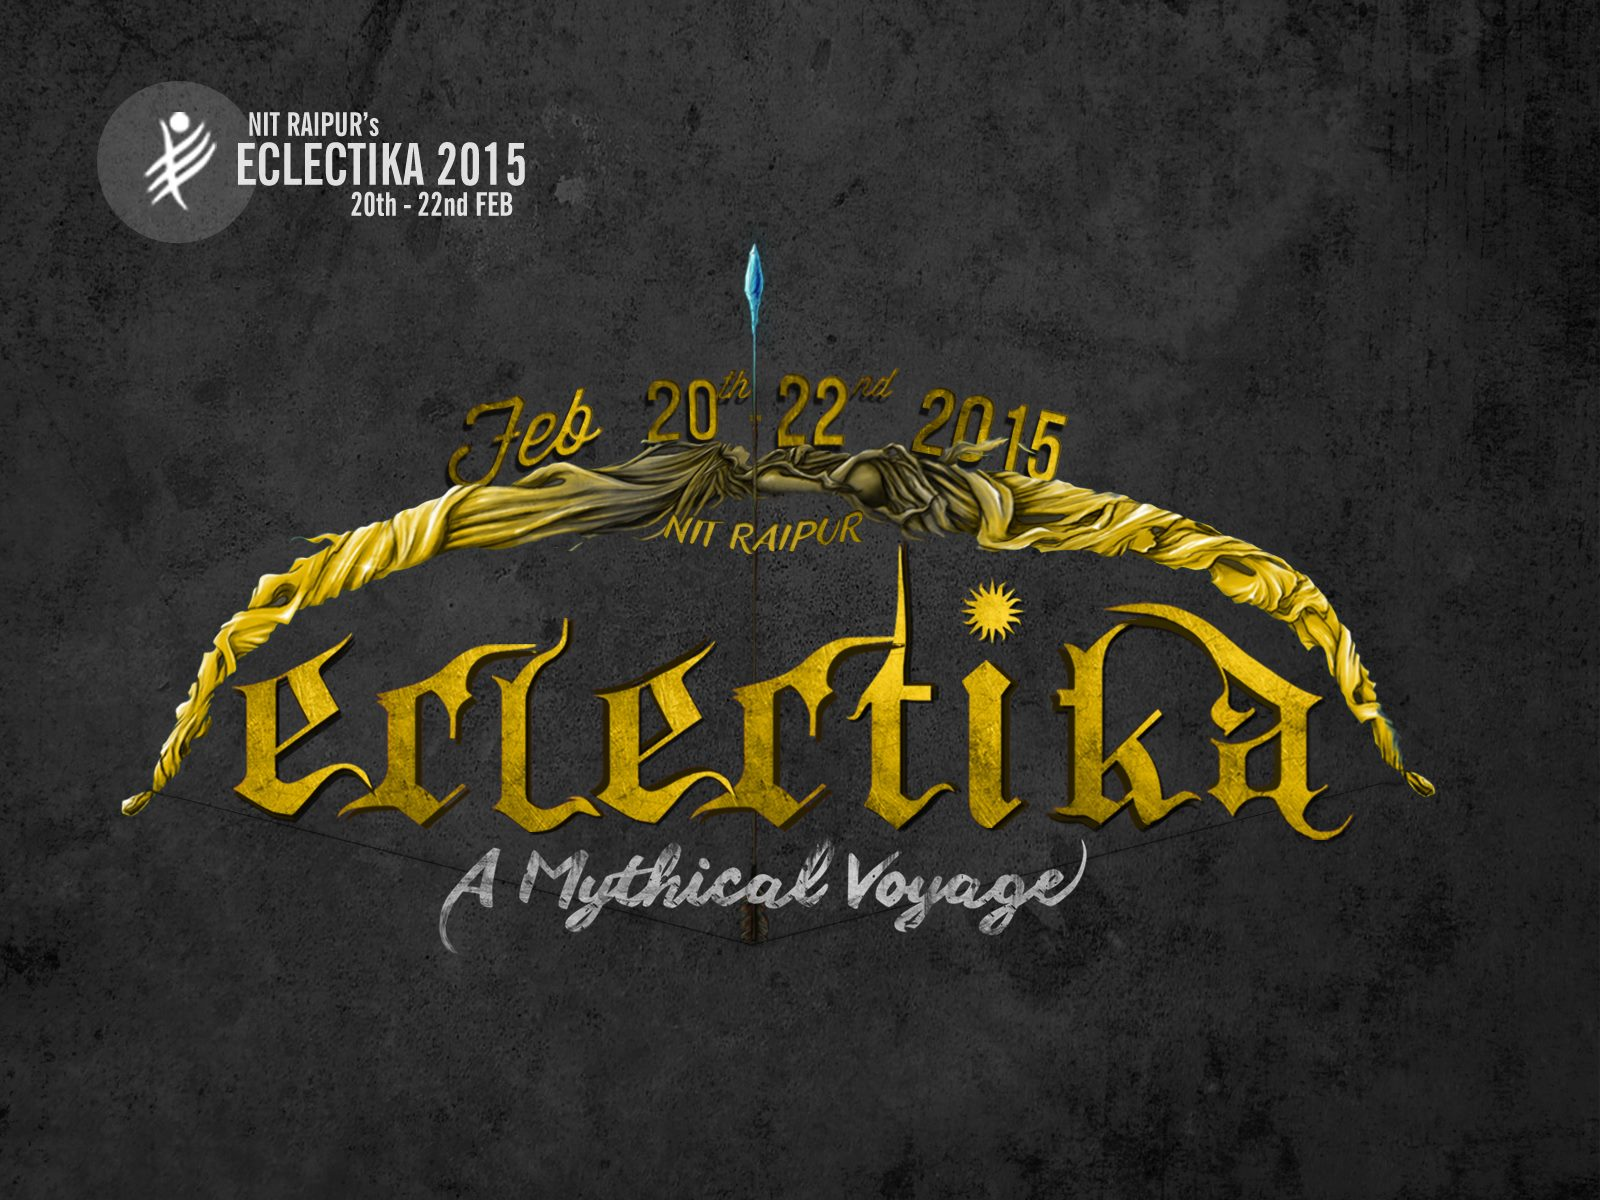 Eclectika; A fest full of Fun and Technology